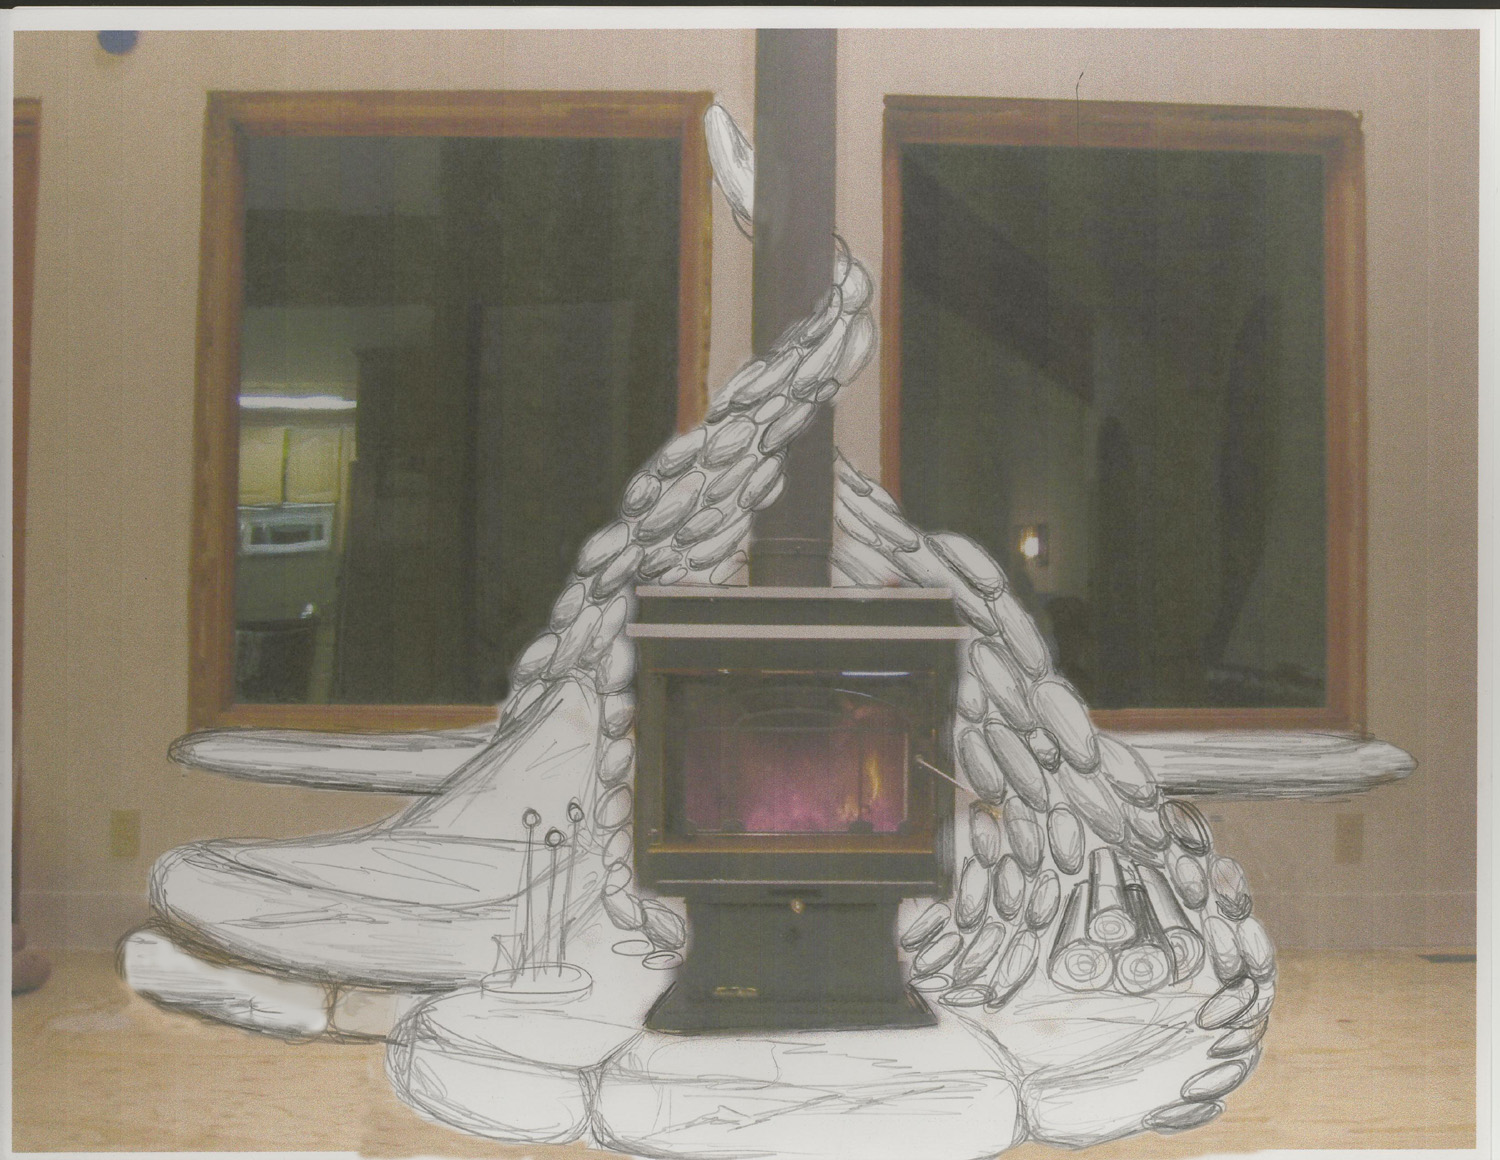 gallery images and information wood stove hearth designs ideas